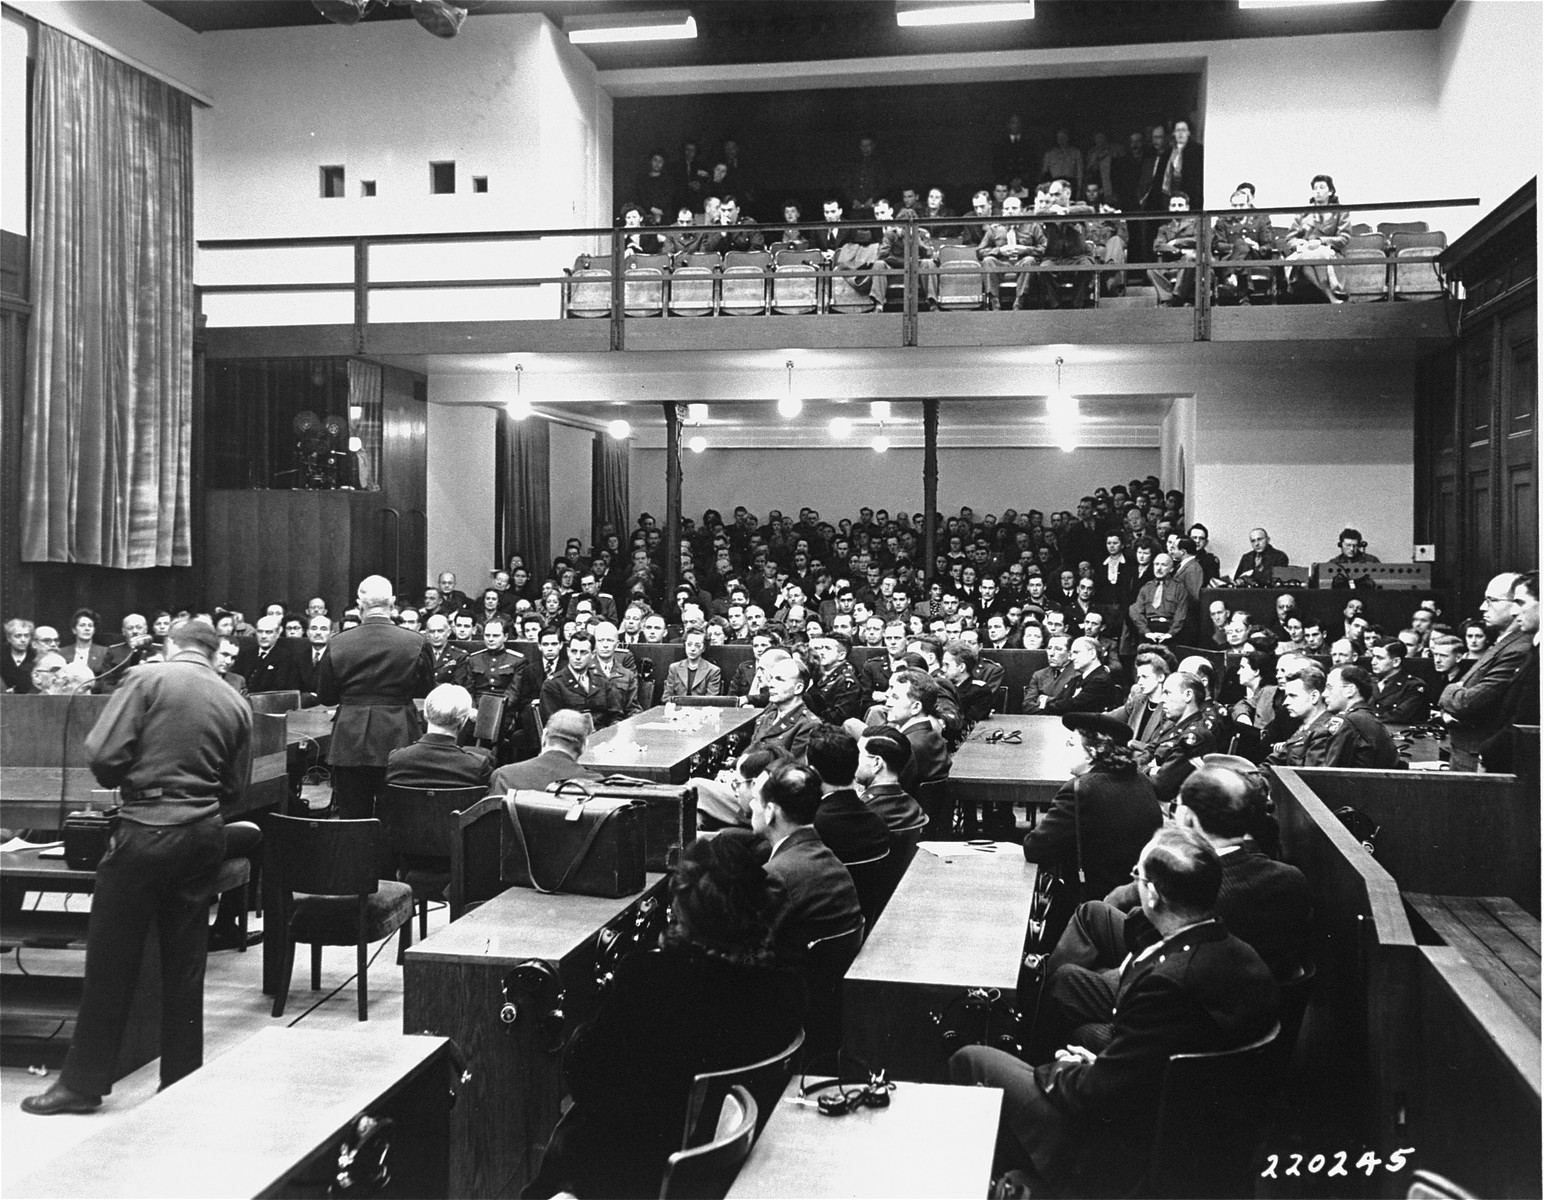 Captain Henry Gereke, a U.S. Army chaplain, reads a short sermon to the audience during a Thanksgiving Day service at the International Military Tribunal trial of war criminals at Nuremberg.